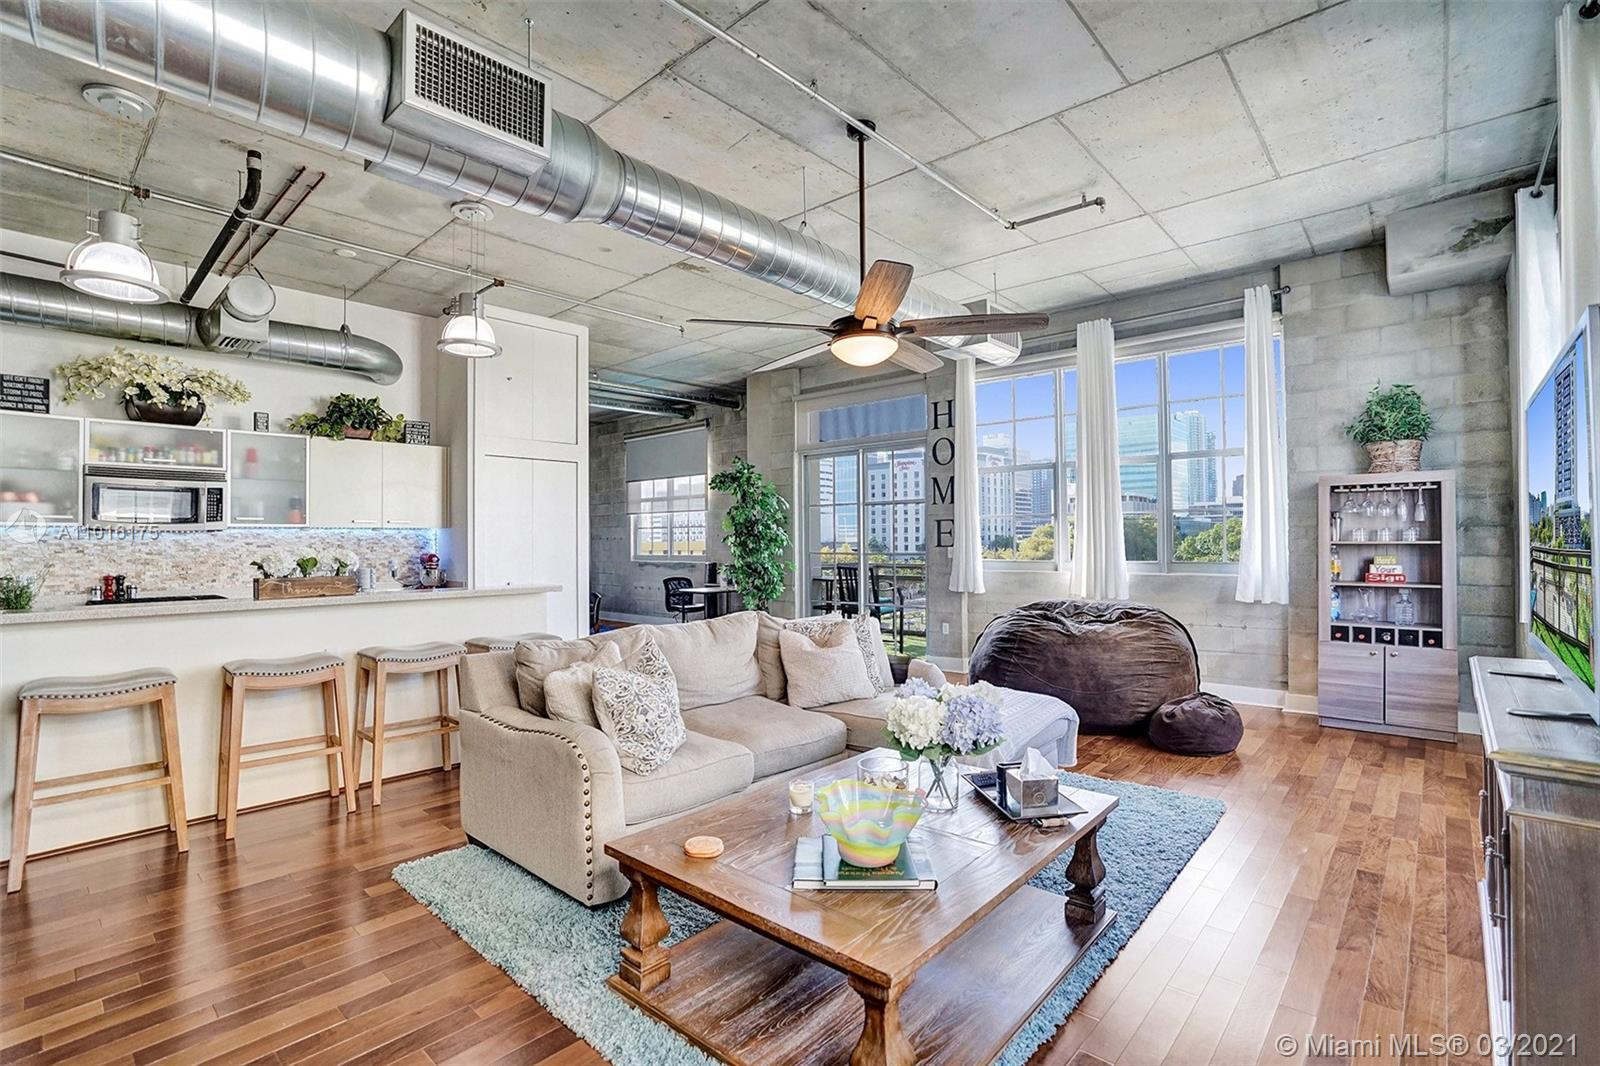 This New York inspired loft building was the defining project that ignited a booming Arts District i